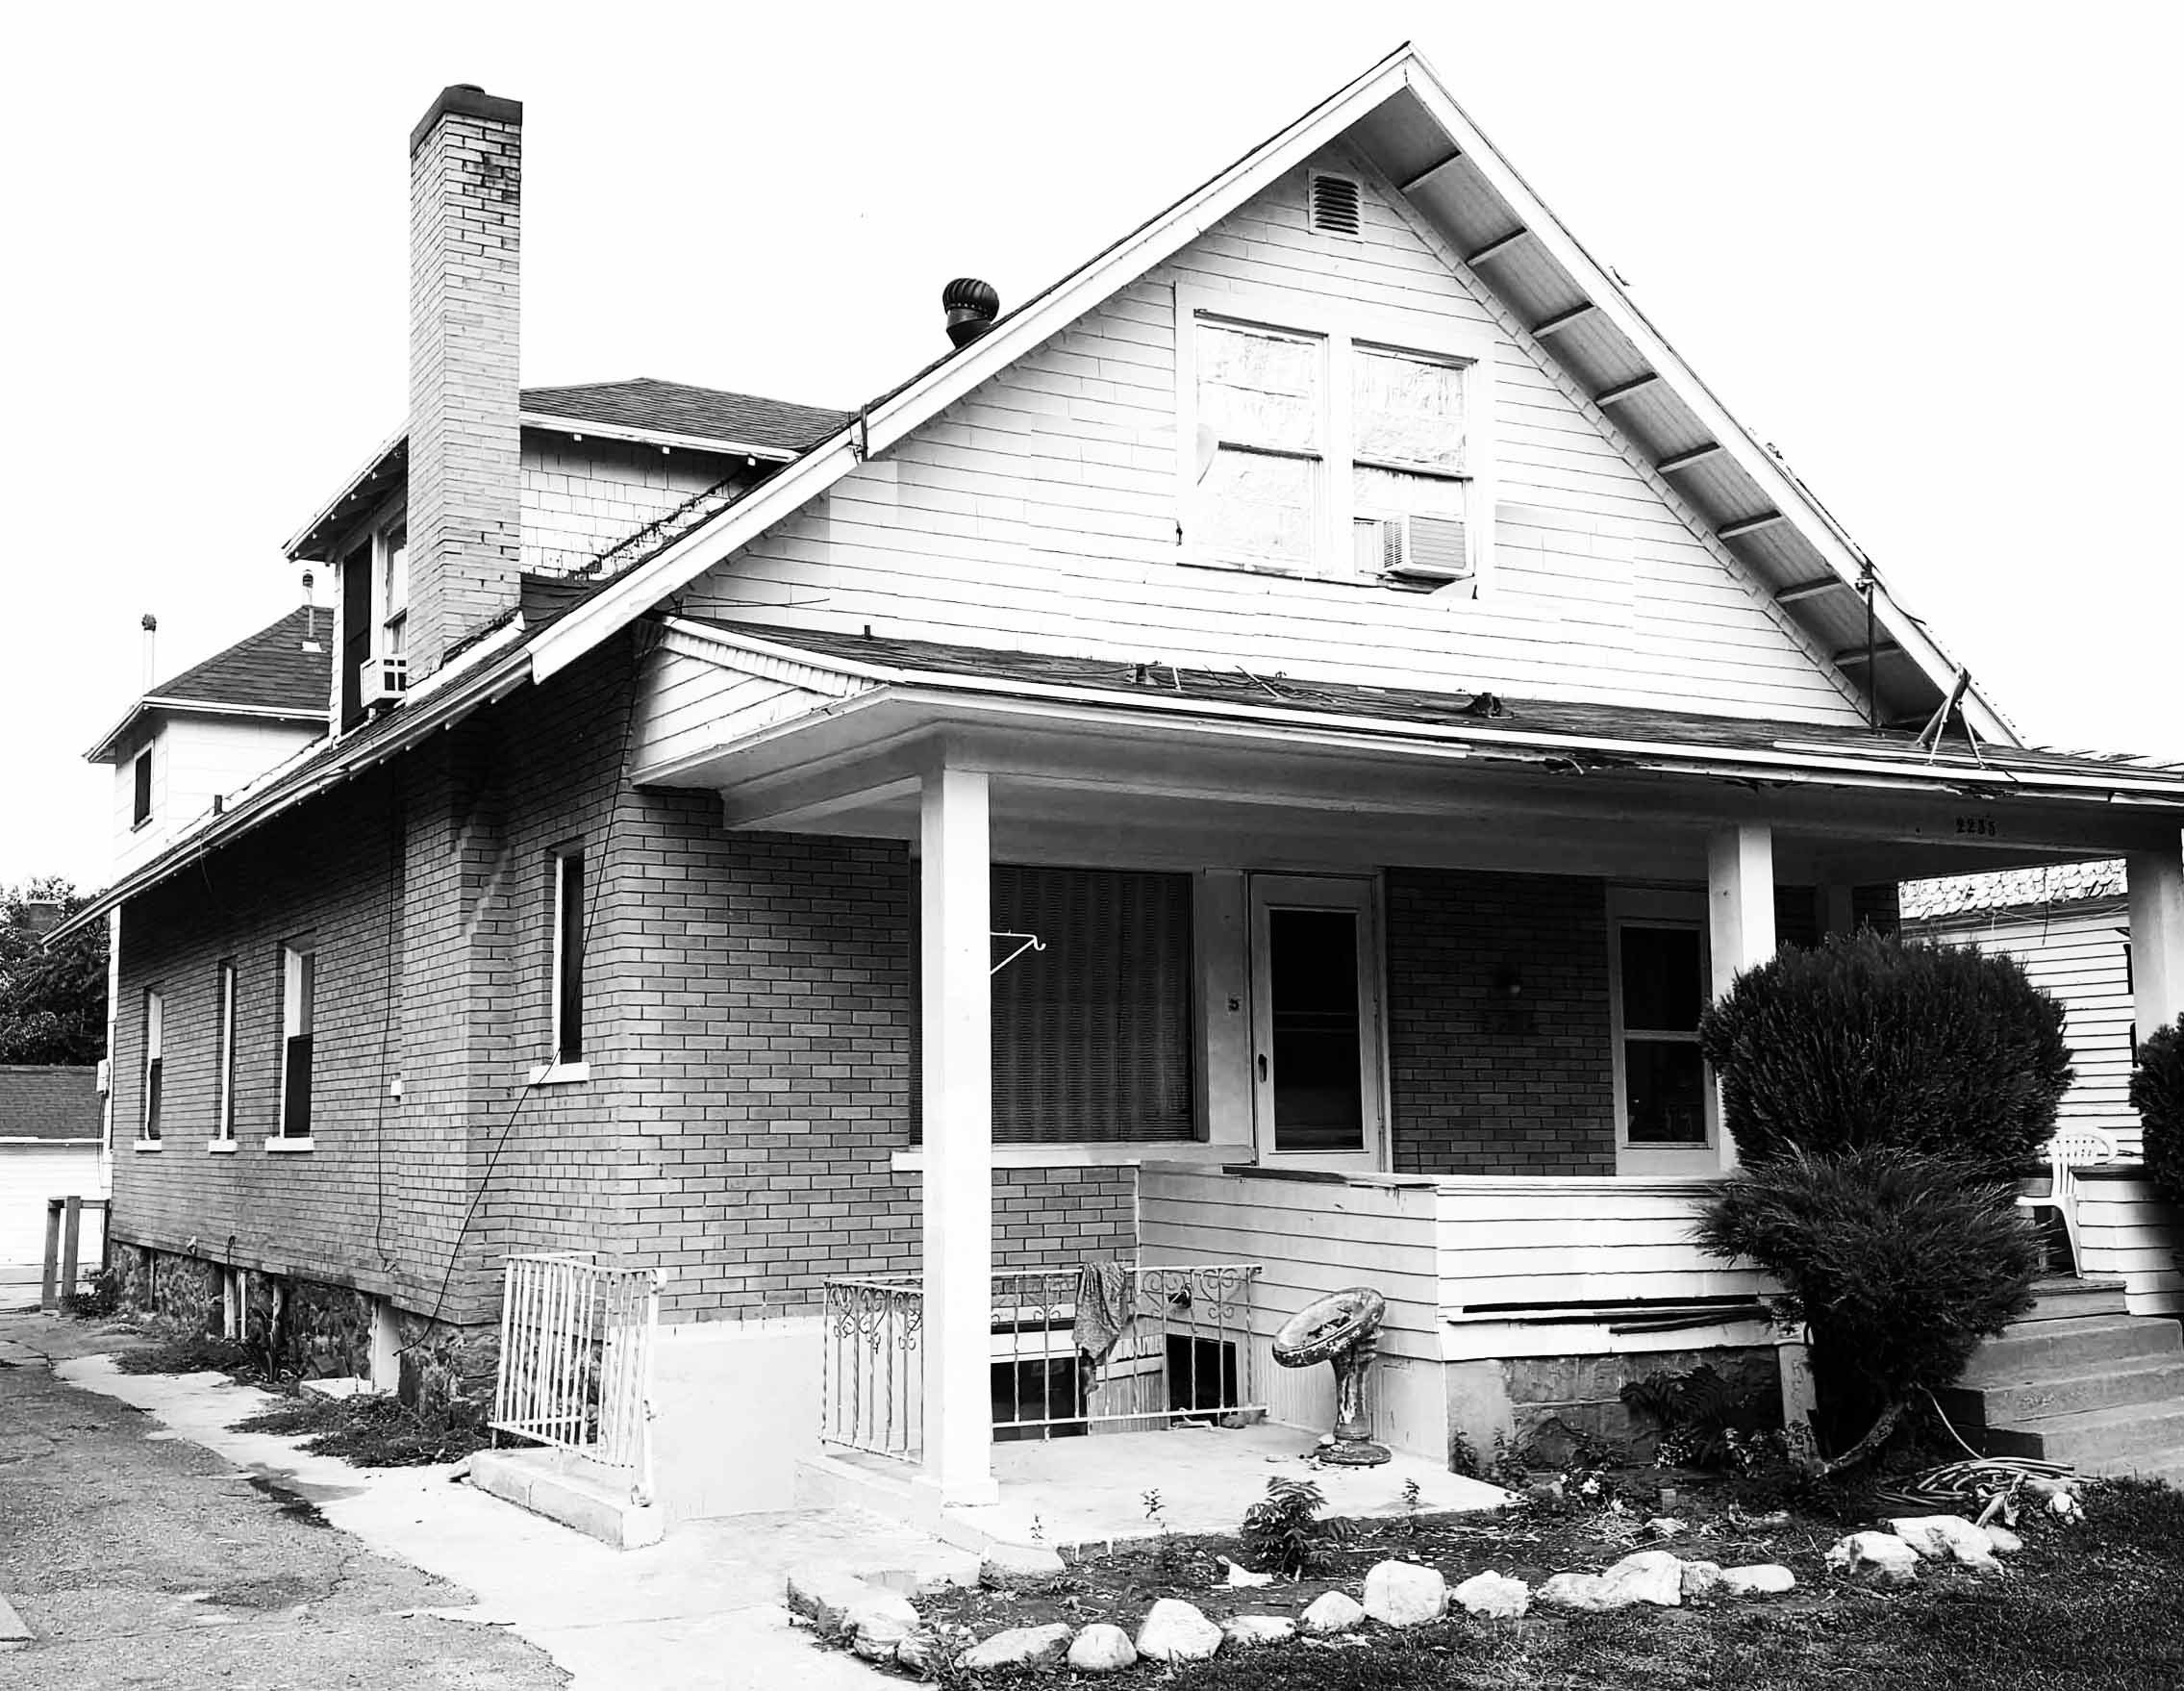 JUST SOLD!  Historic Craftsman Diamond in the Rough